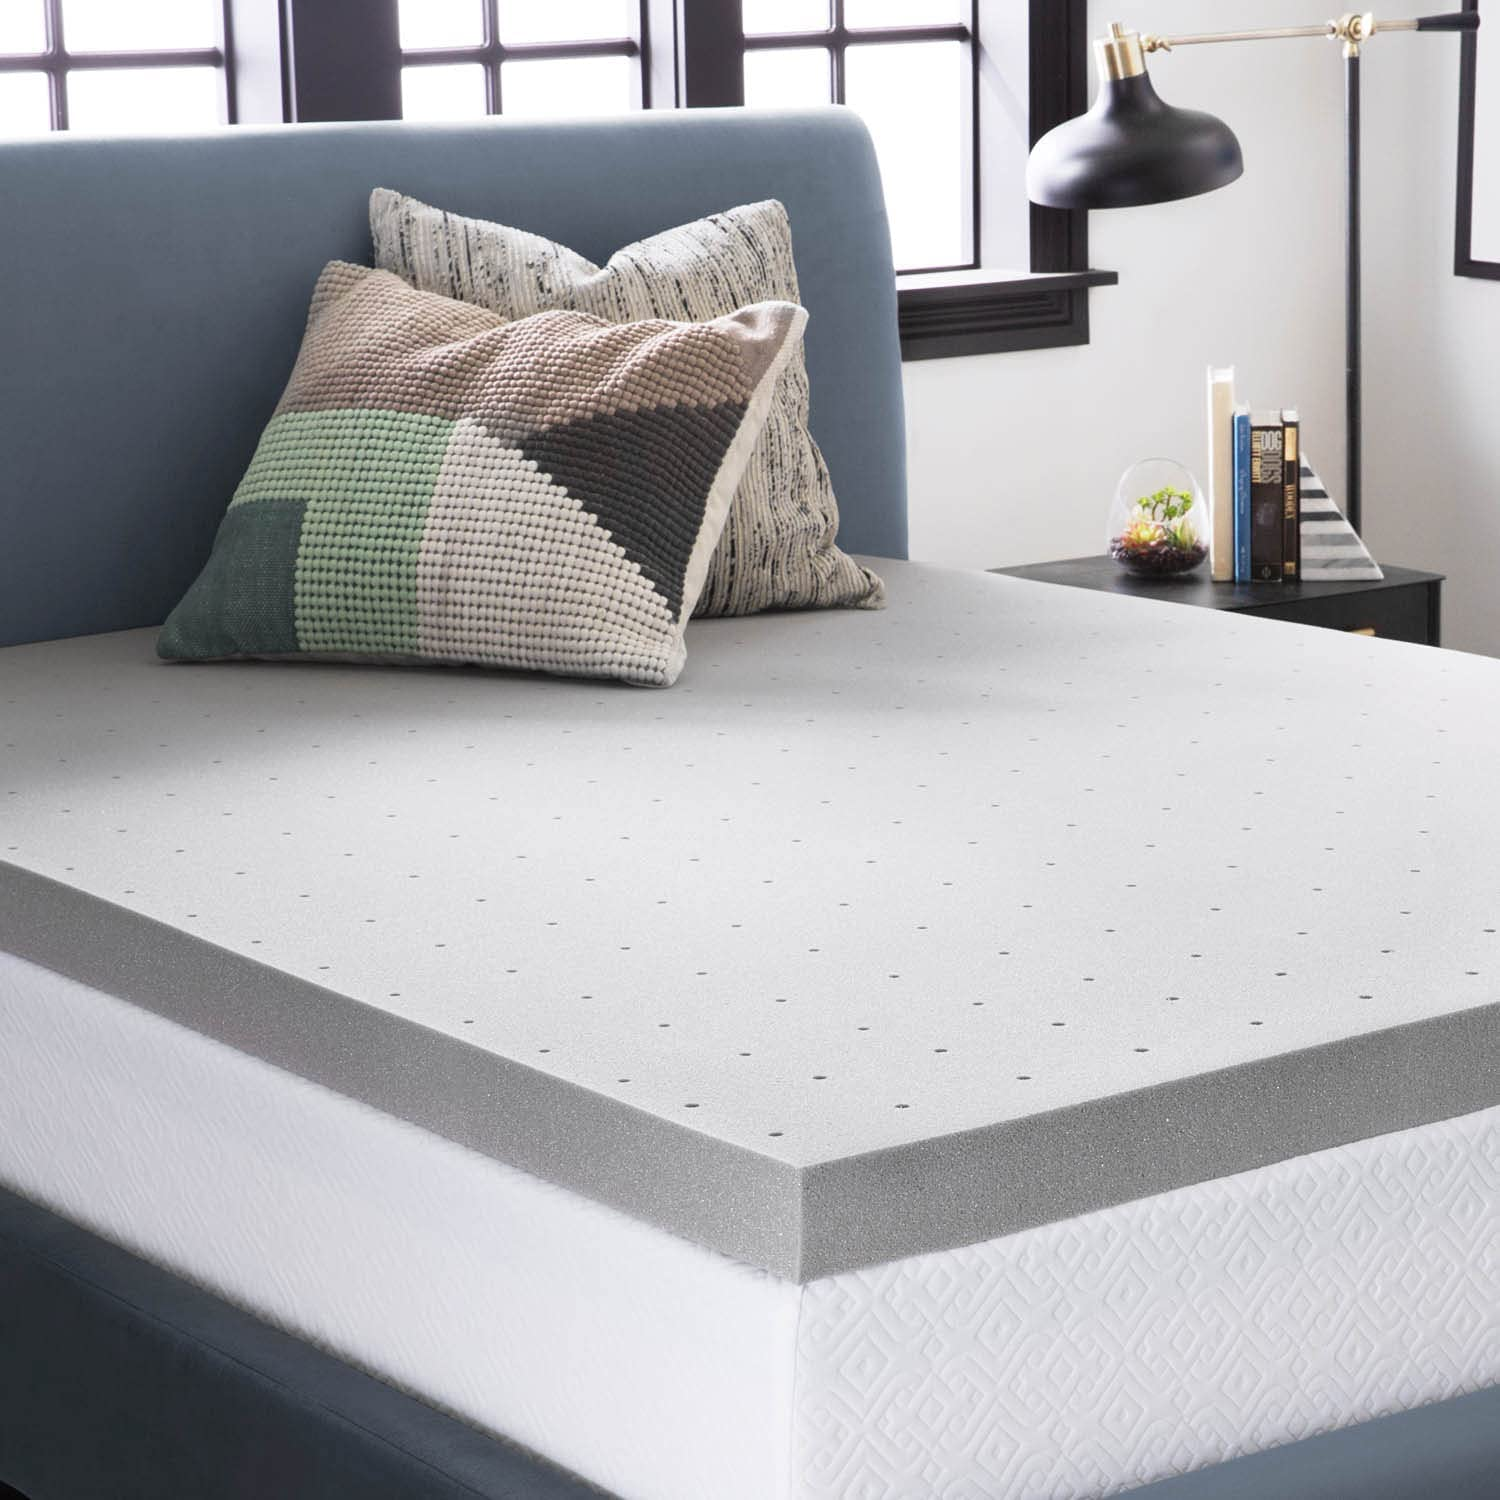 LUCID 3 Inch Bamboo Charcoal Memory Foam Mattress Topper - Twin, Topper Only,